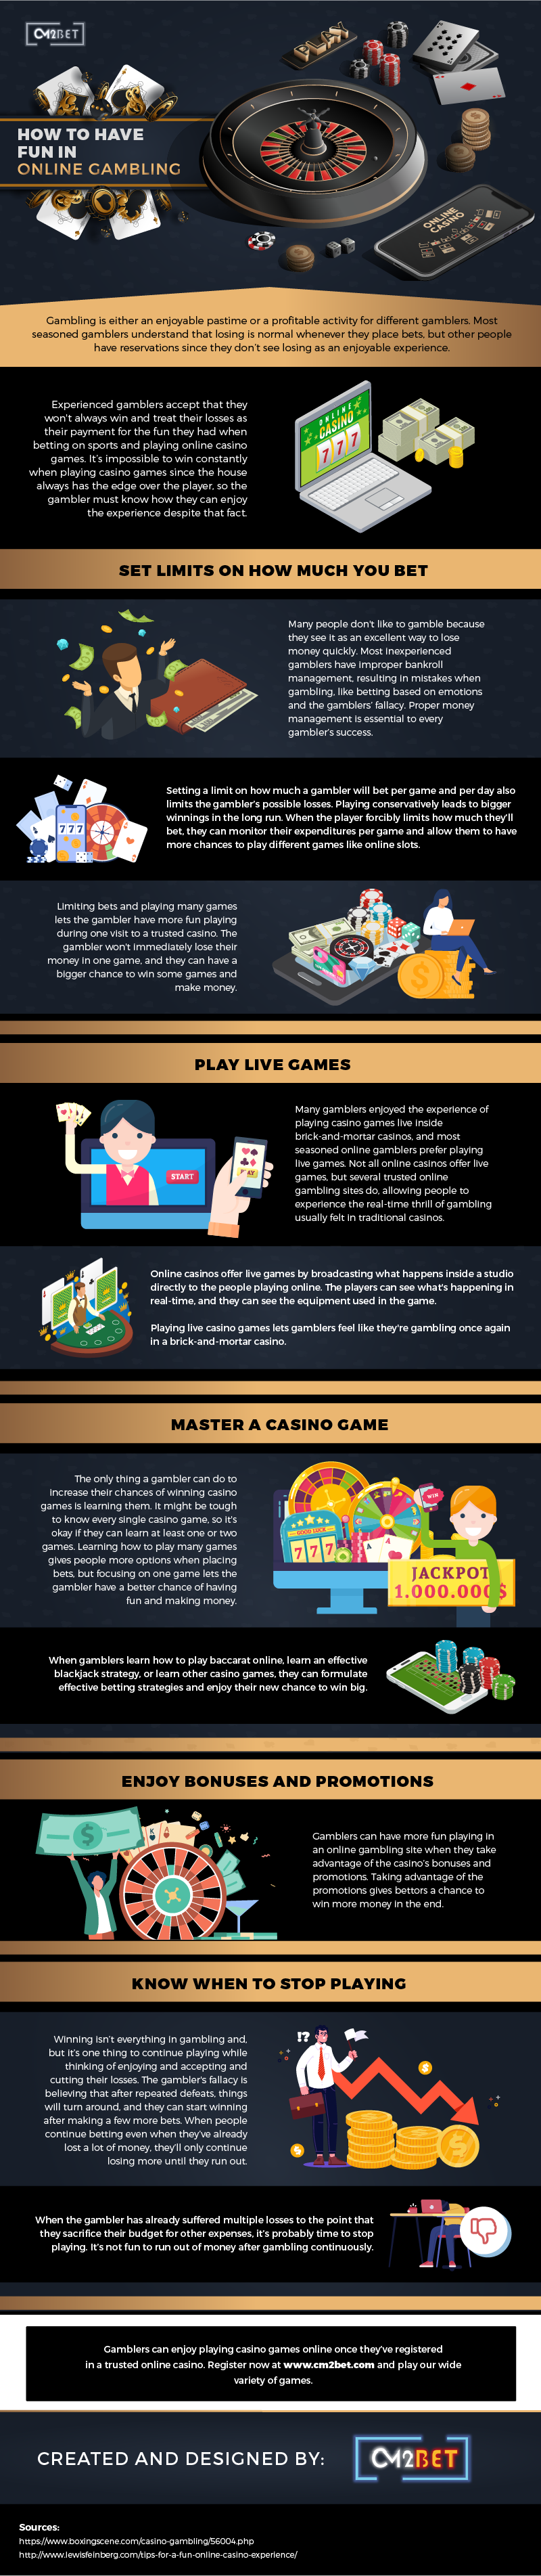 How to Have Fun in Online Gambling – Infographic